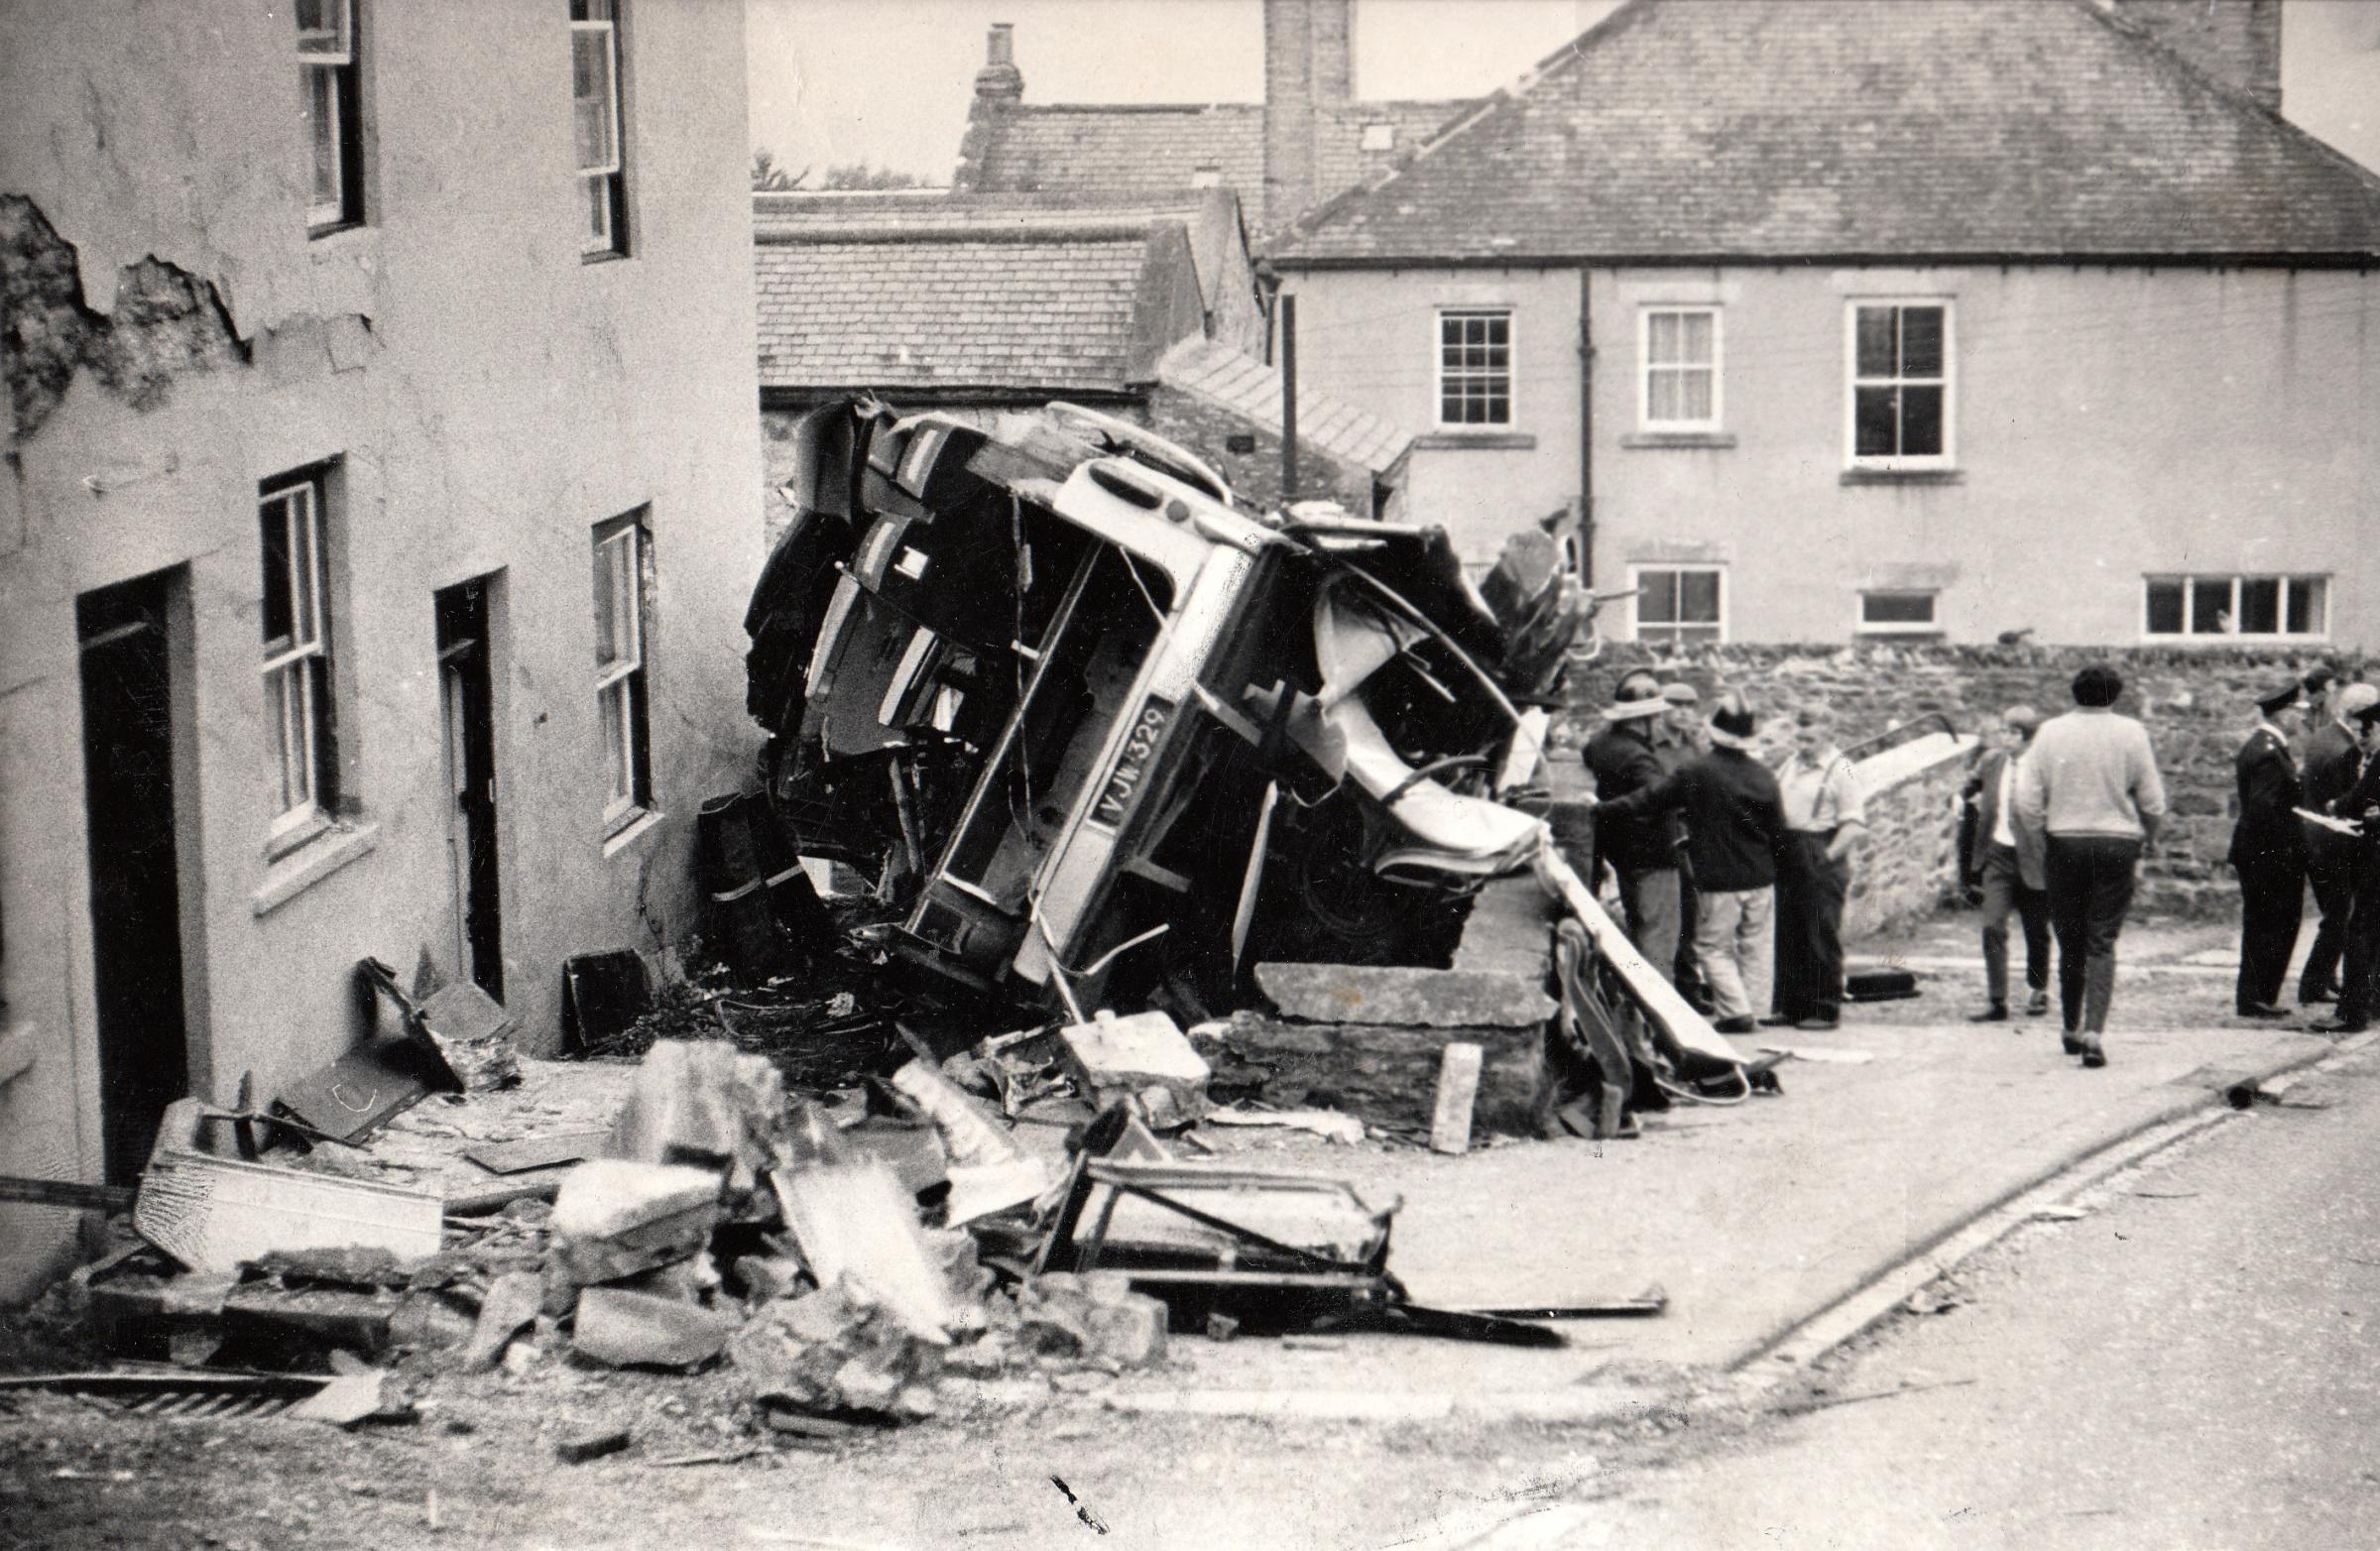 Crawleyside bus disaster remembered, 50 years on